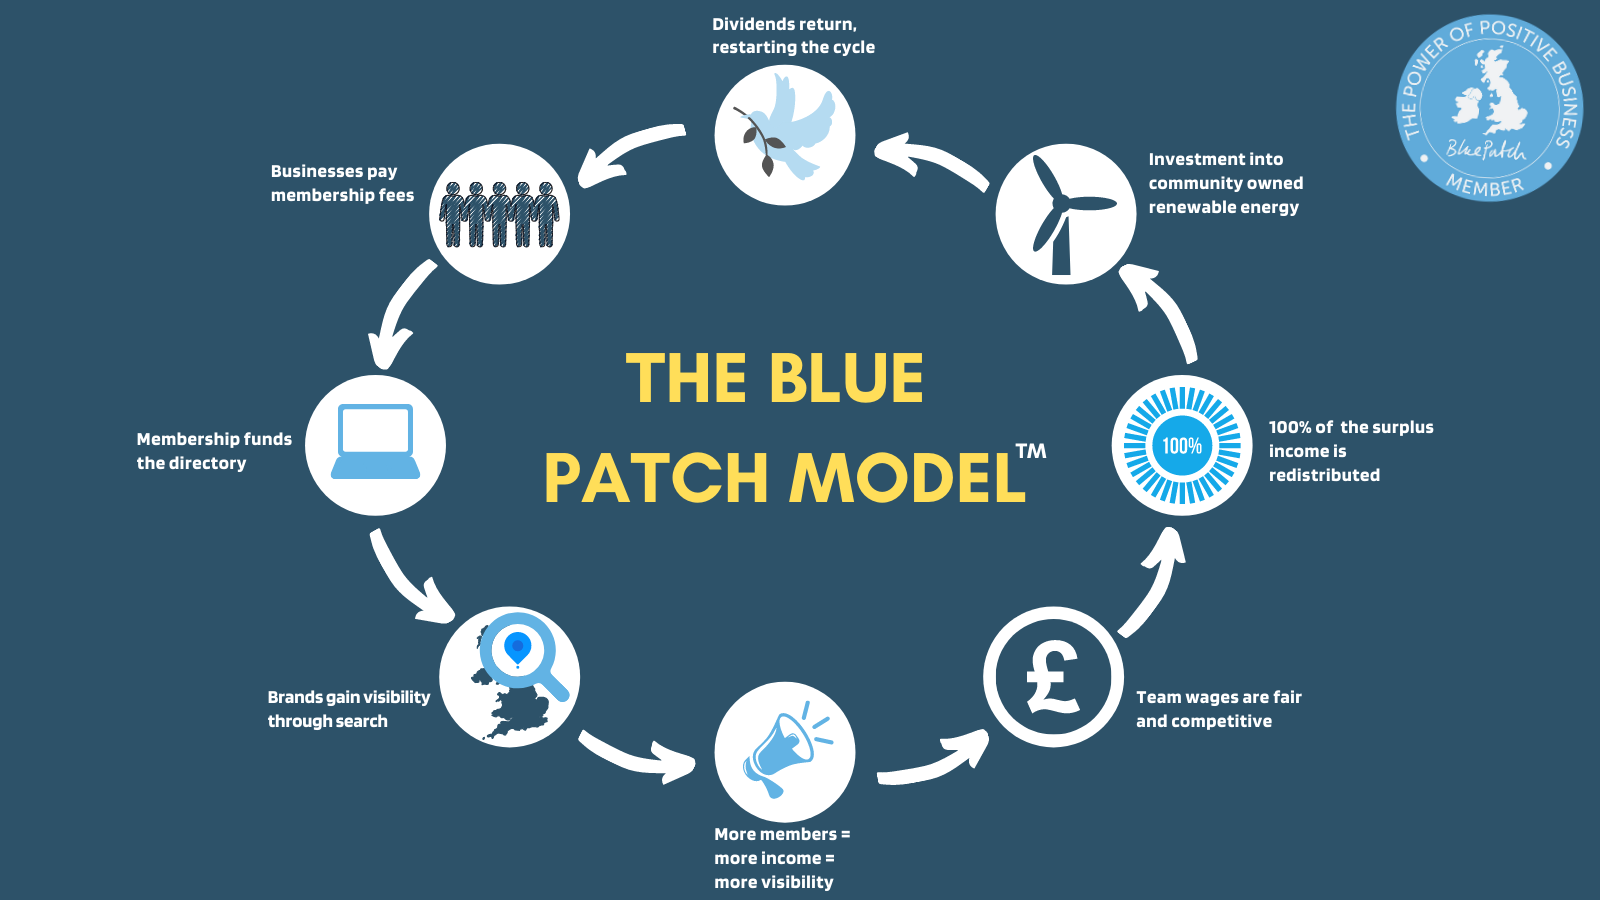 infographic showing the Blue Batch circular business model, where profit is shared by the community